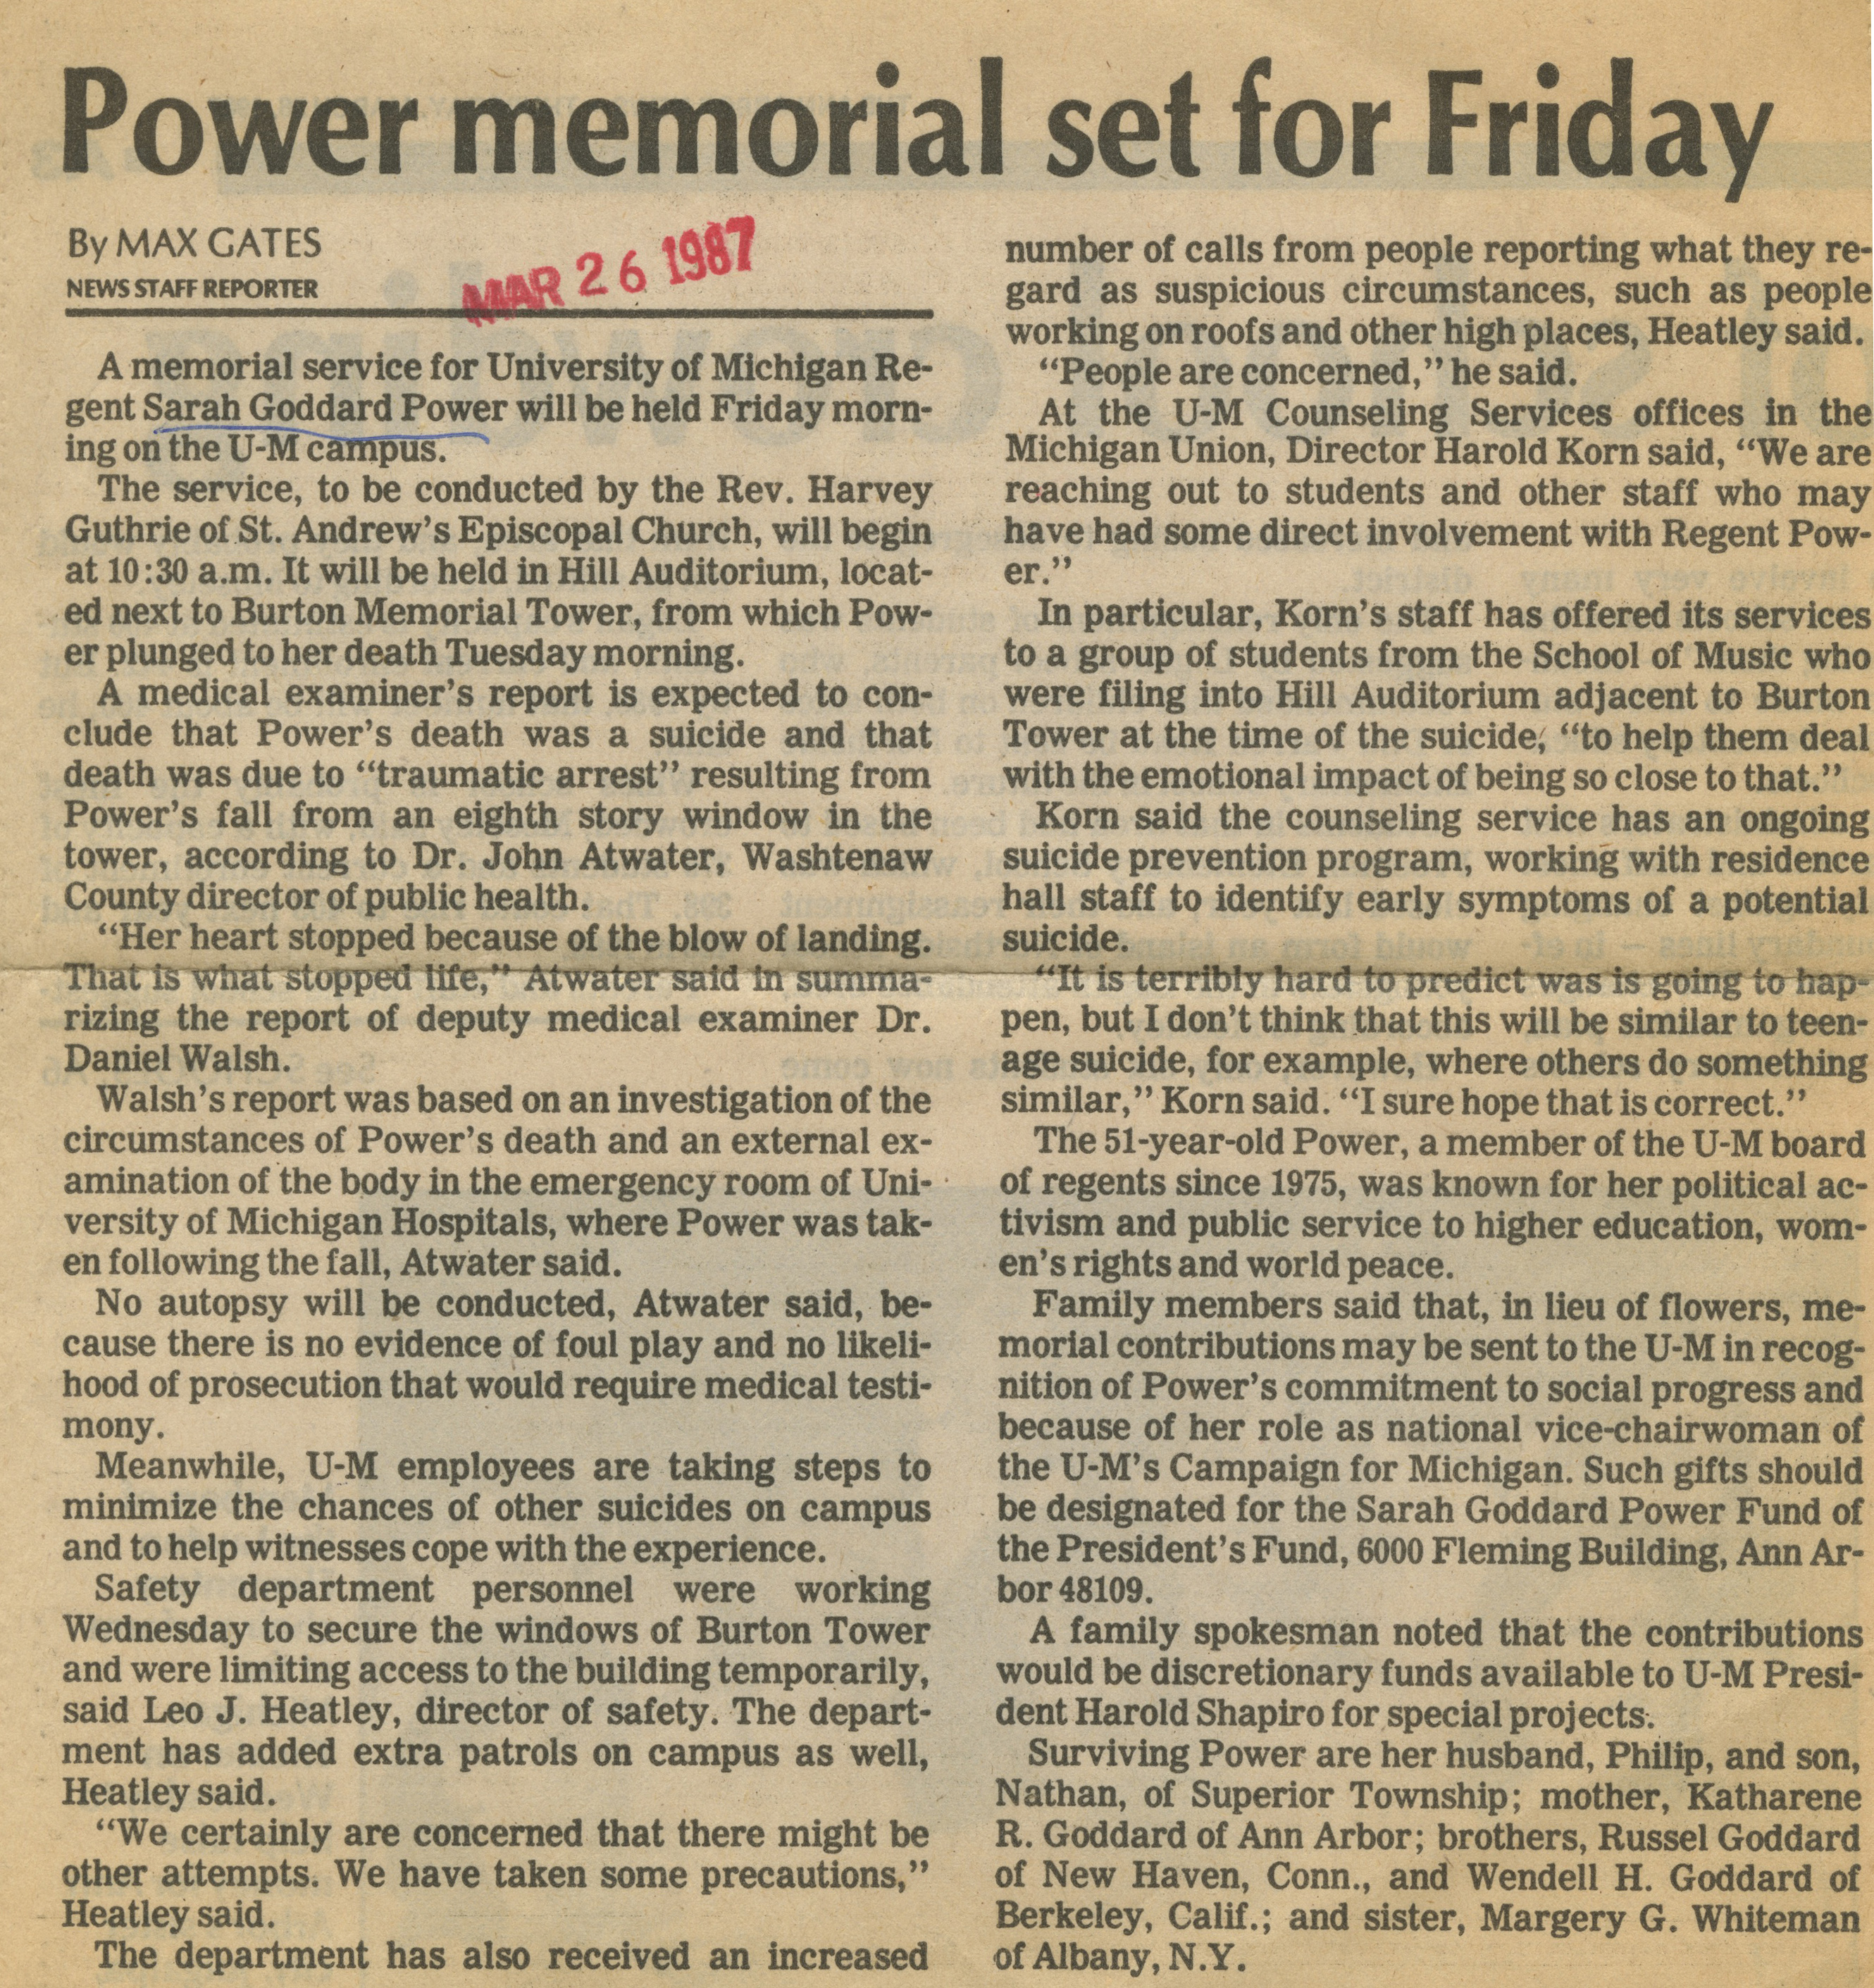 Power Memorial Set For Friday image